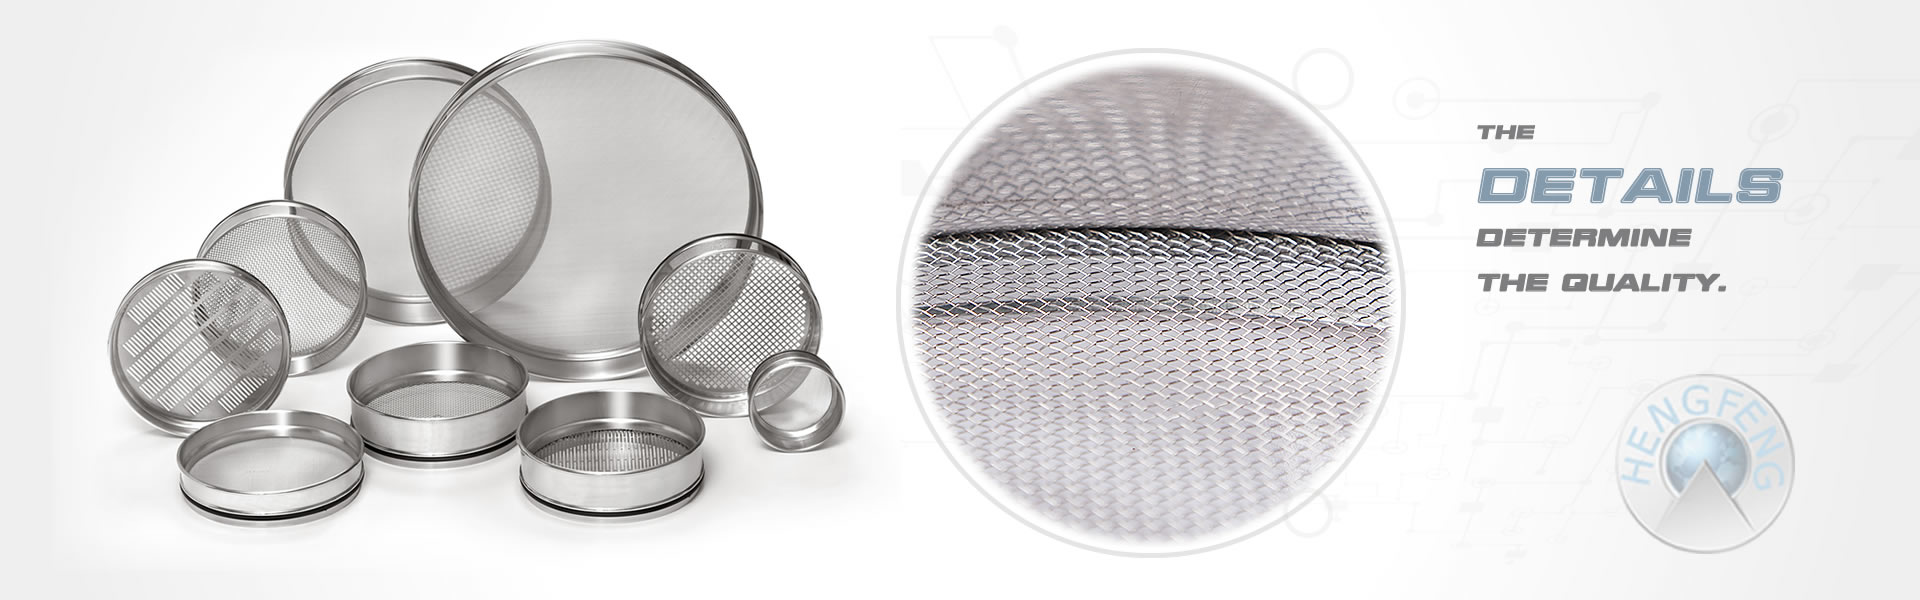 Several test sieves on the white background with a detail of woven test sieve.